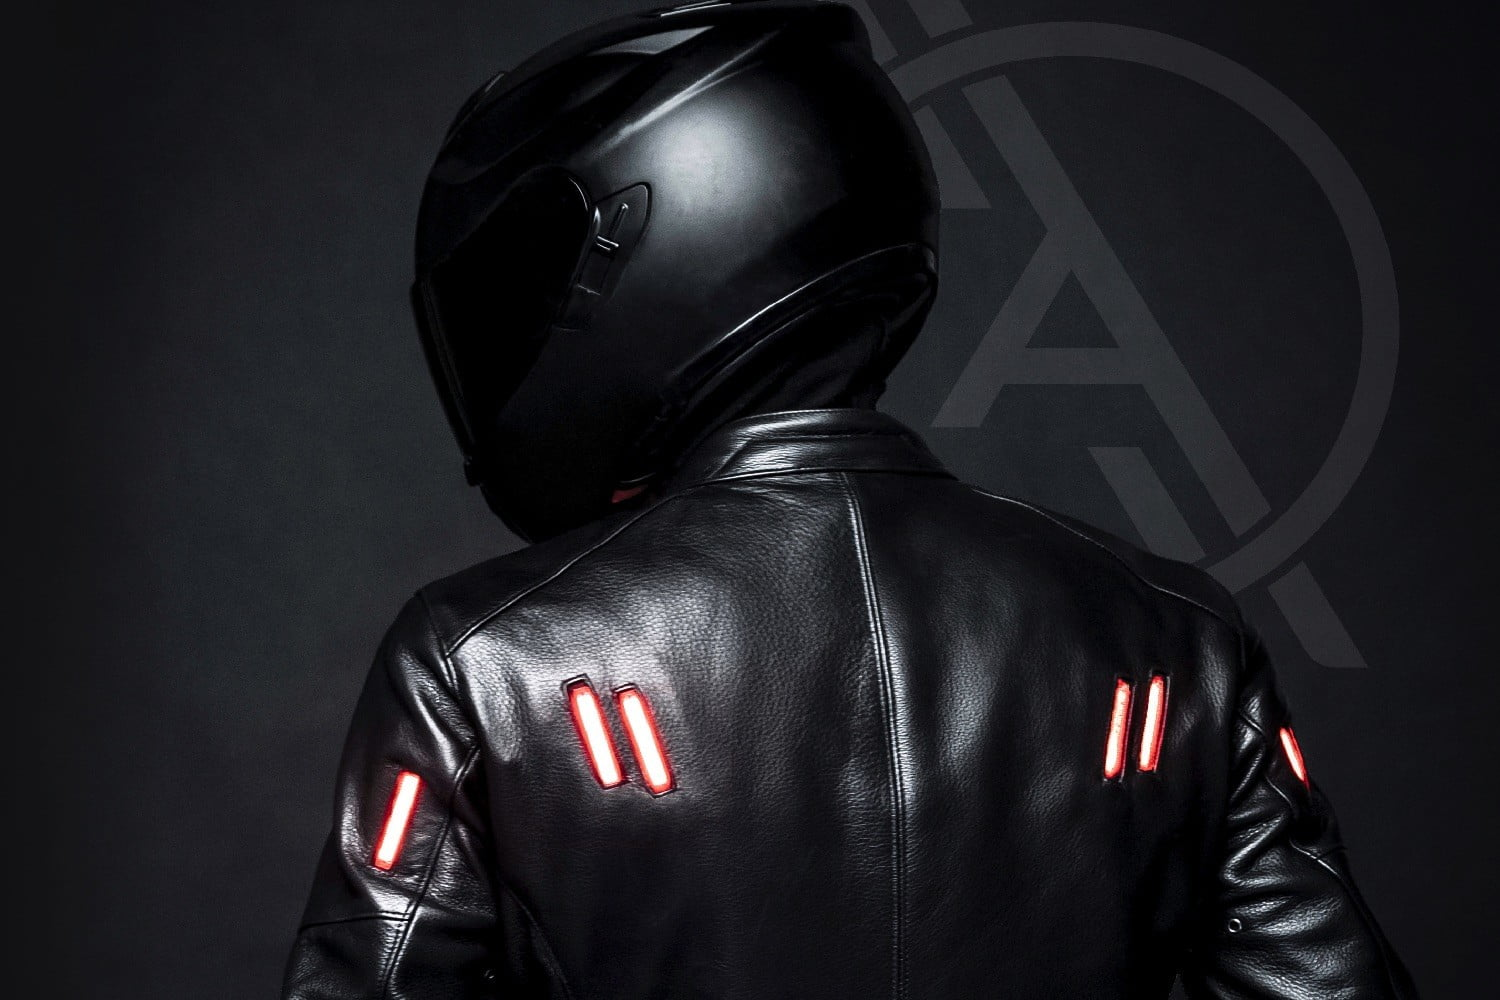 Bright idea: this motorcycle jacket has built-in lights that sync with your bike